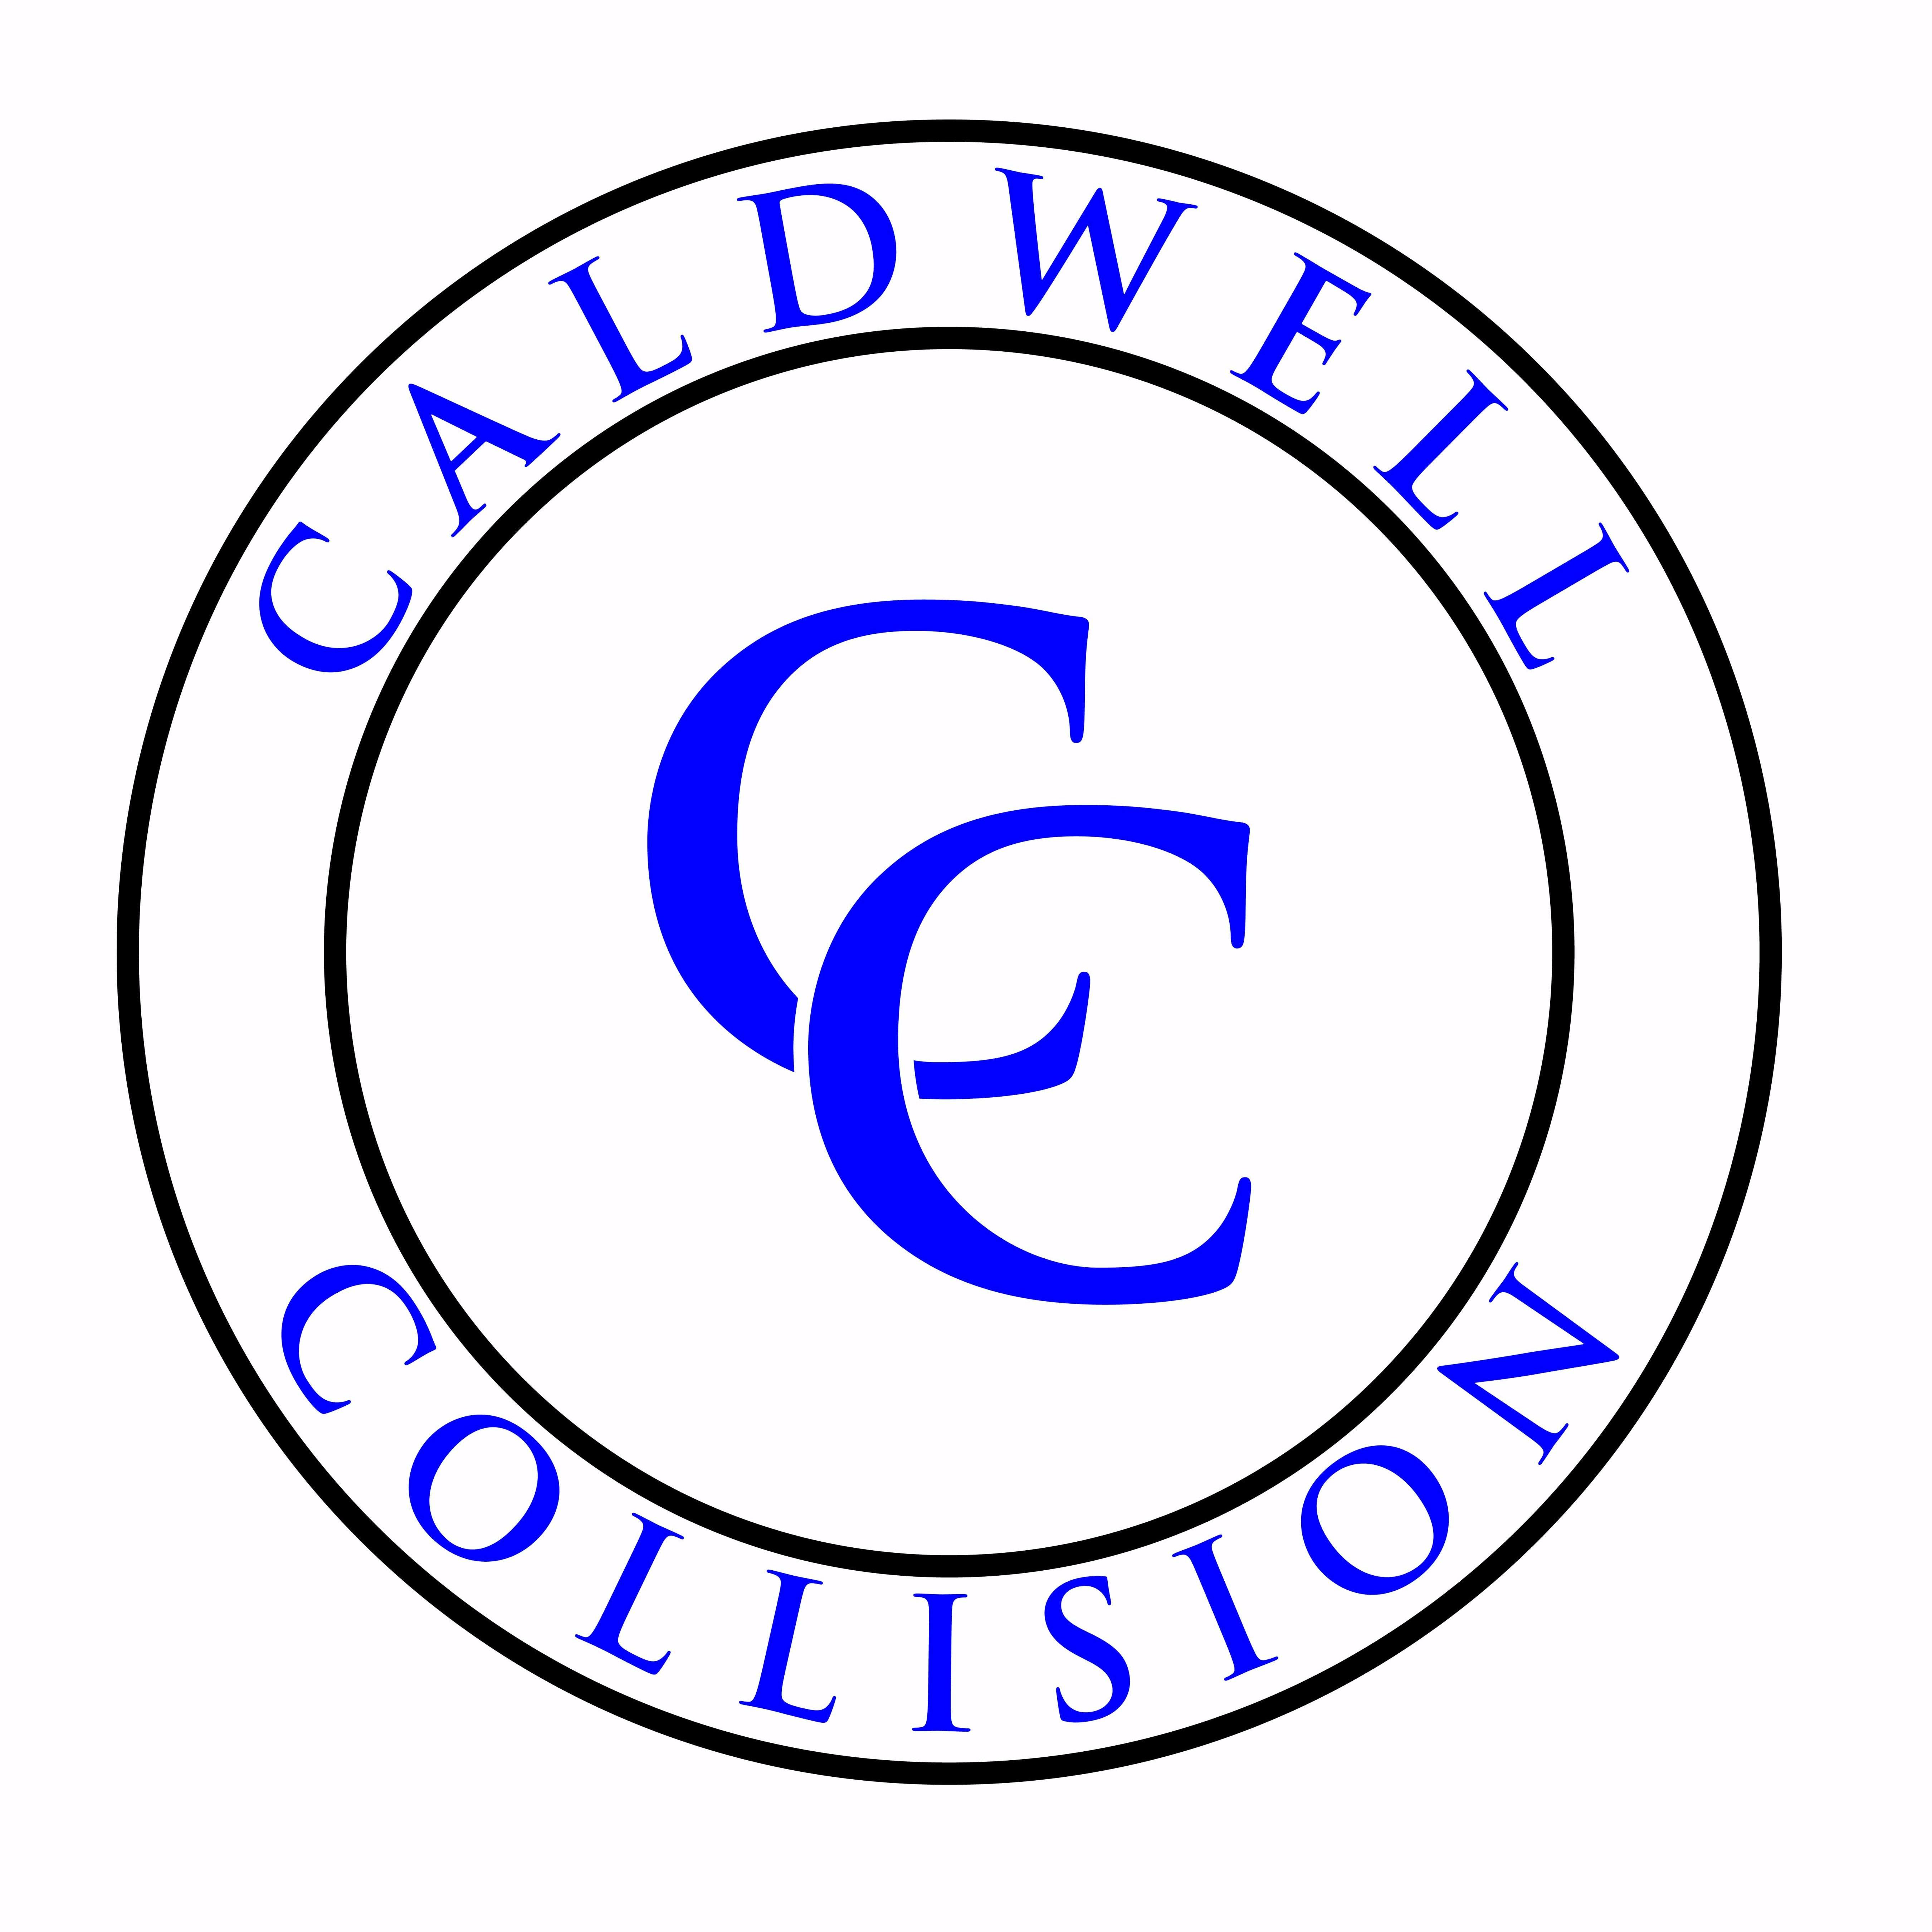 Caldwell Collision